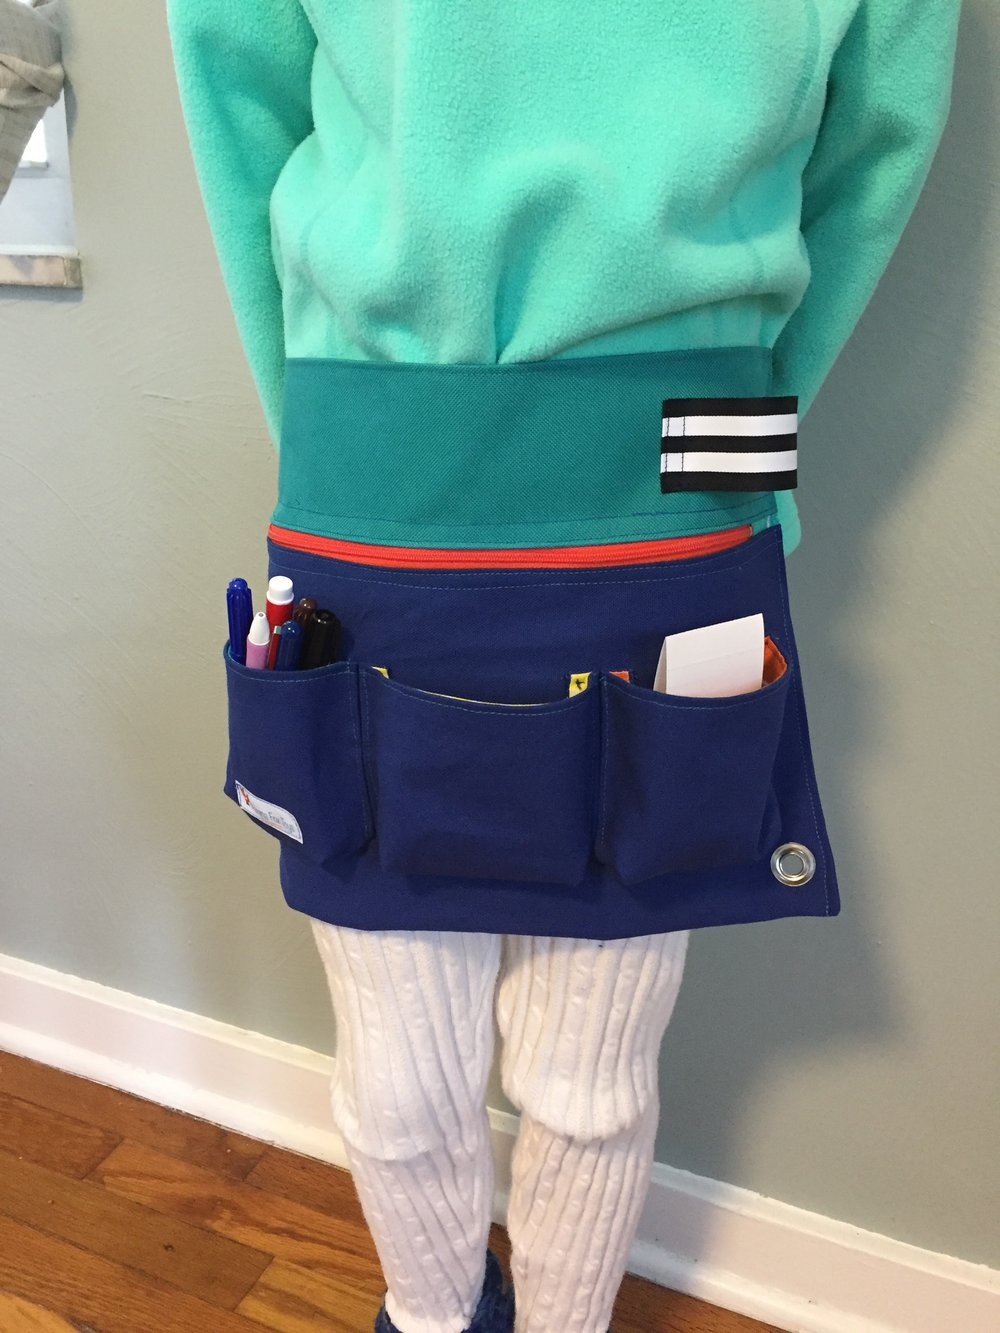 Tool belt with zipper pocket and pouches